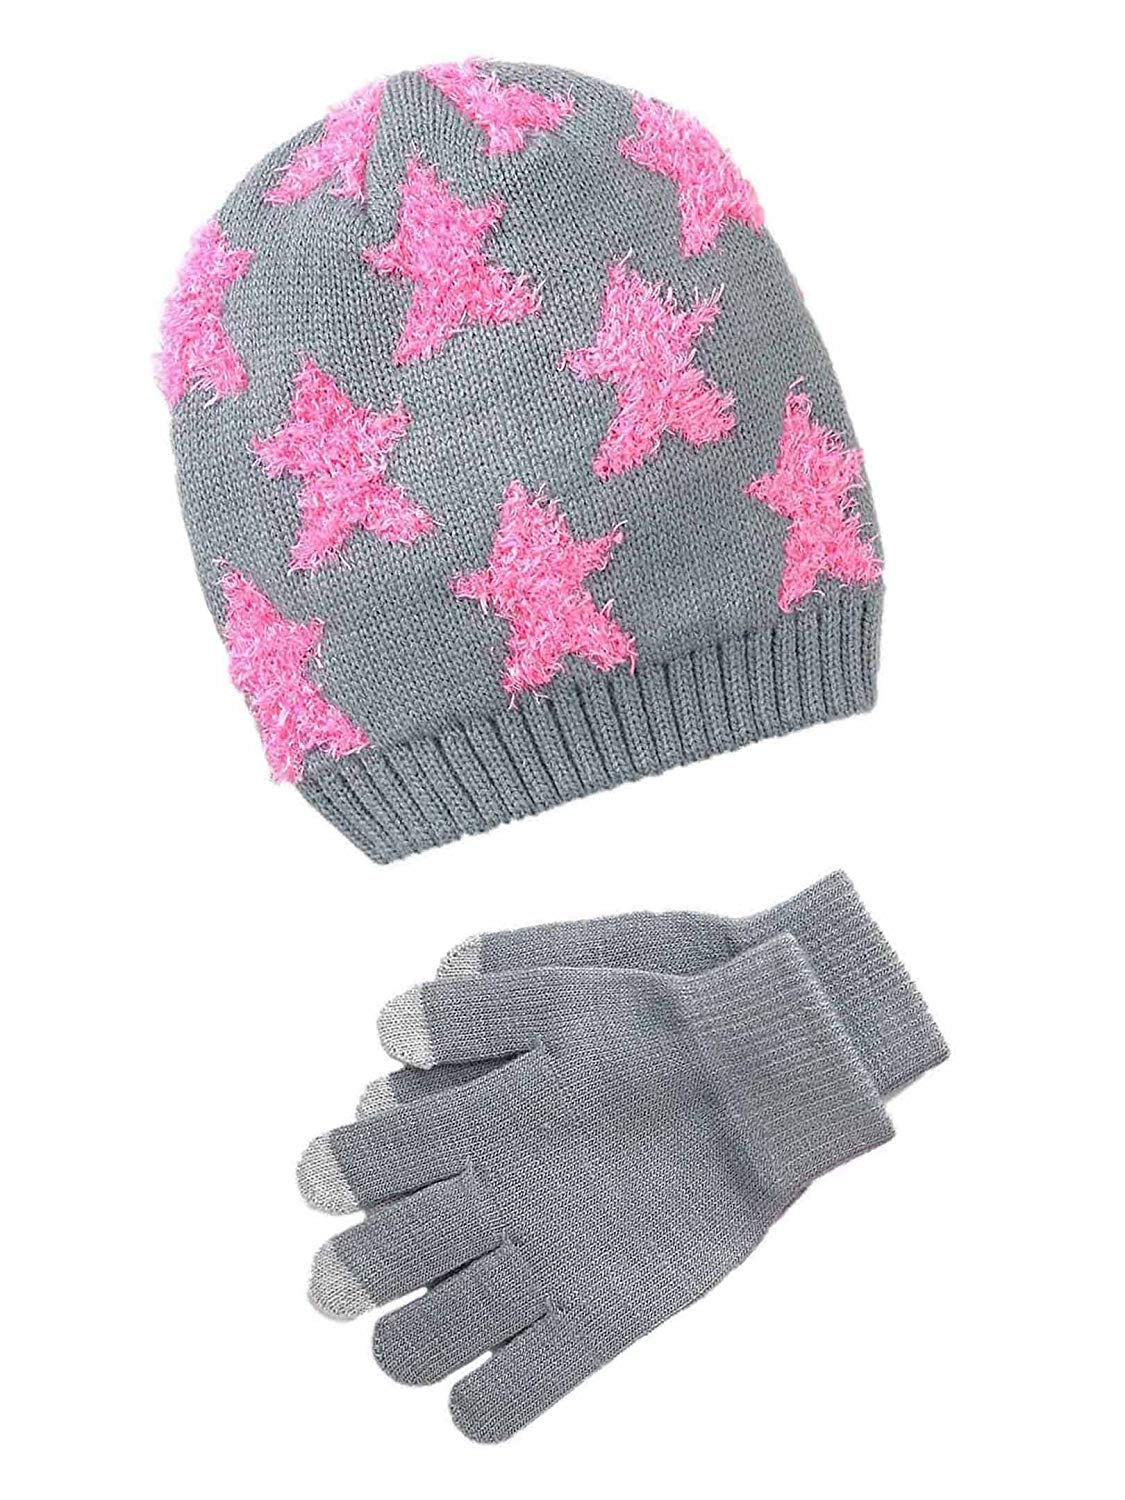 8a70f4c7374 Get Quotations · SO Girls Star Stretch Knit Hat   Texting Gloves Set - Pink    Grey